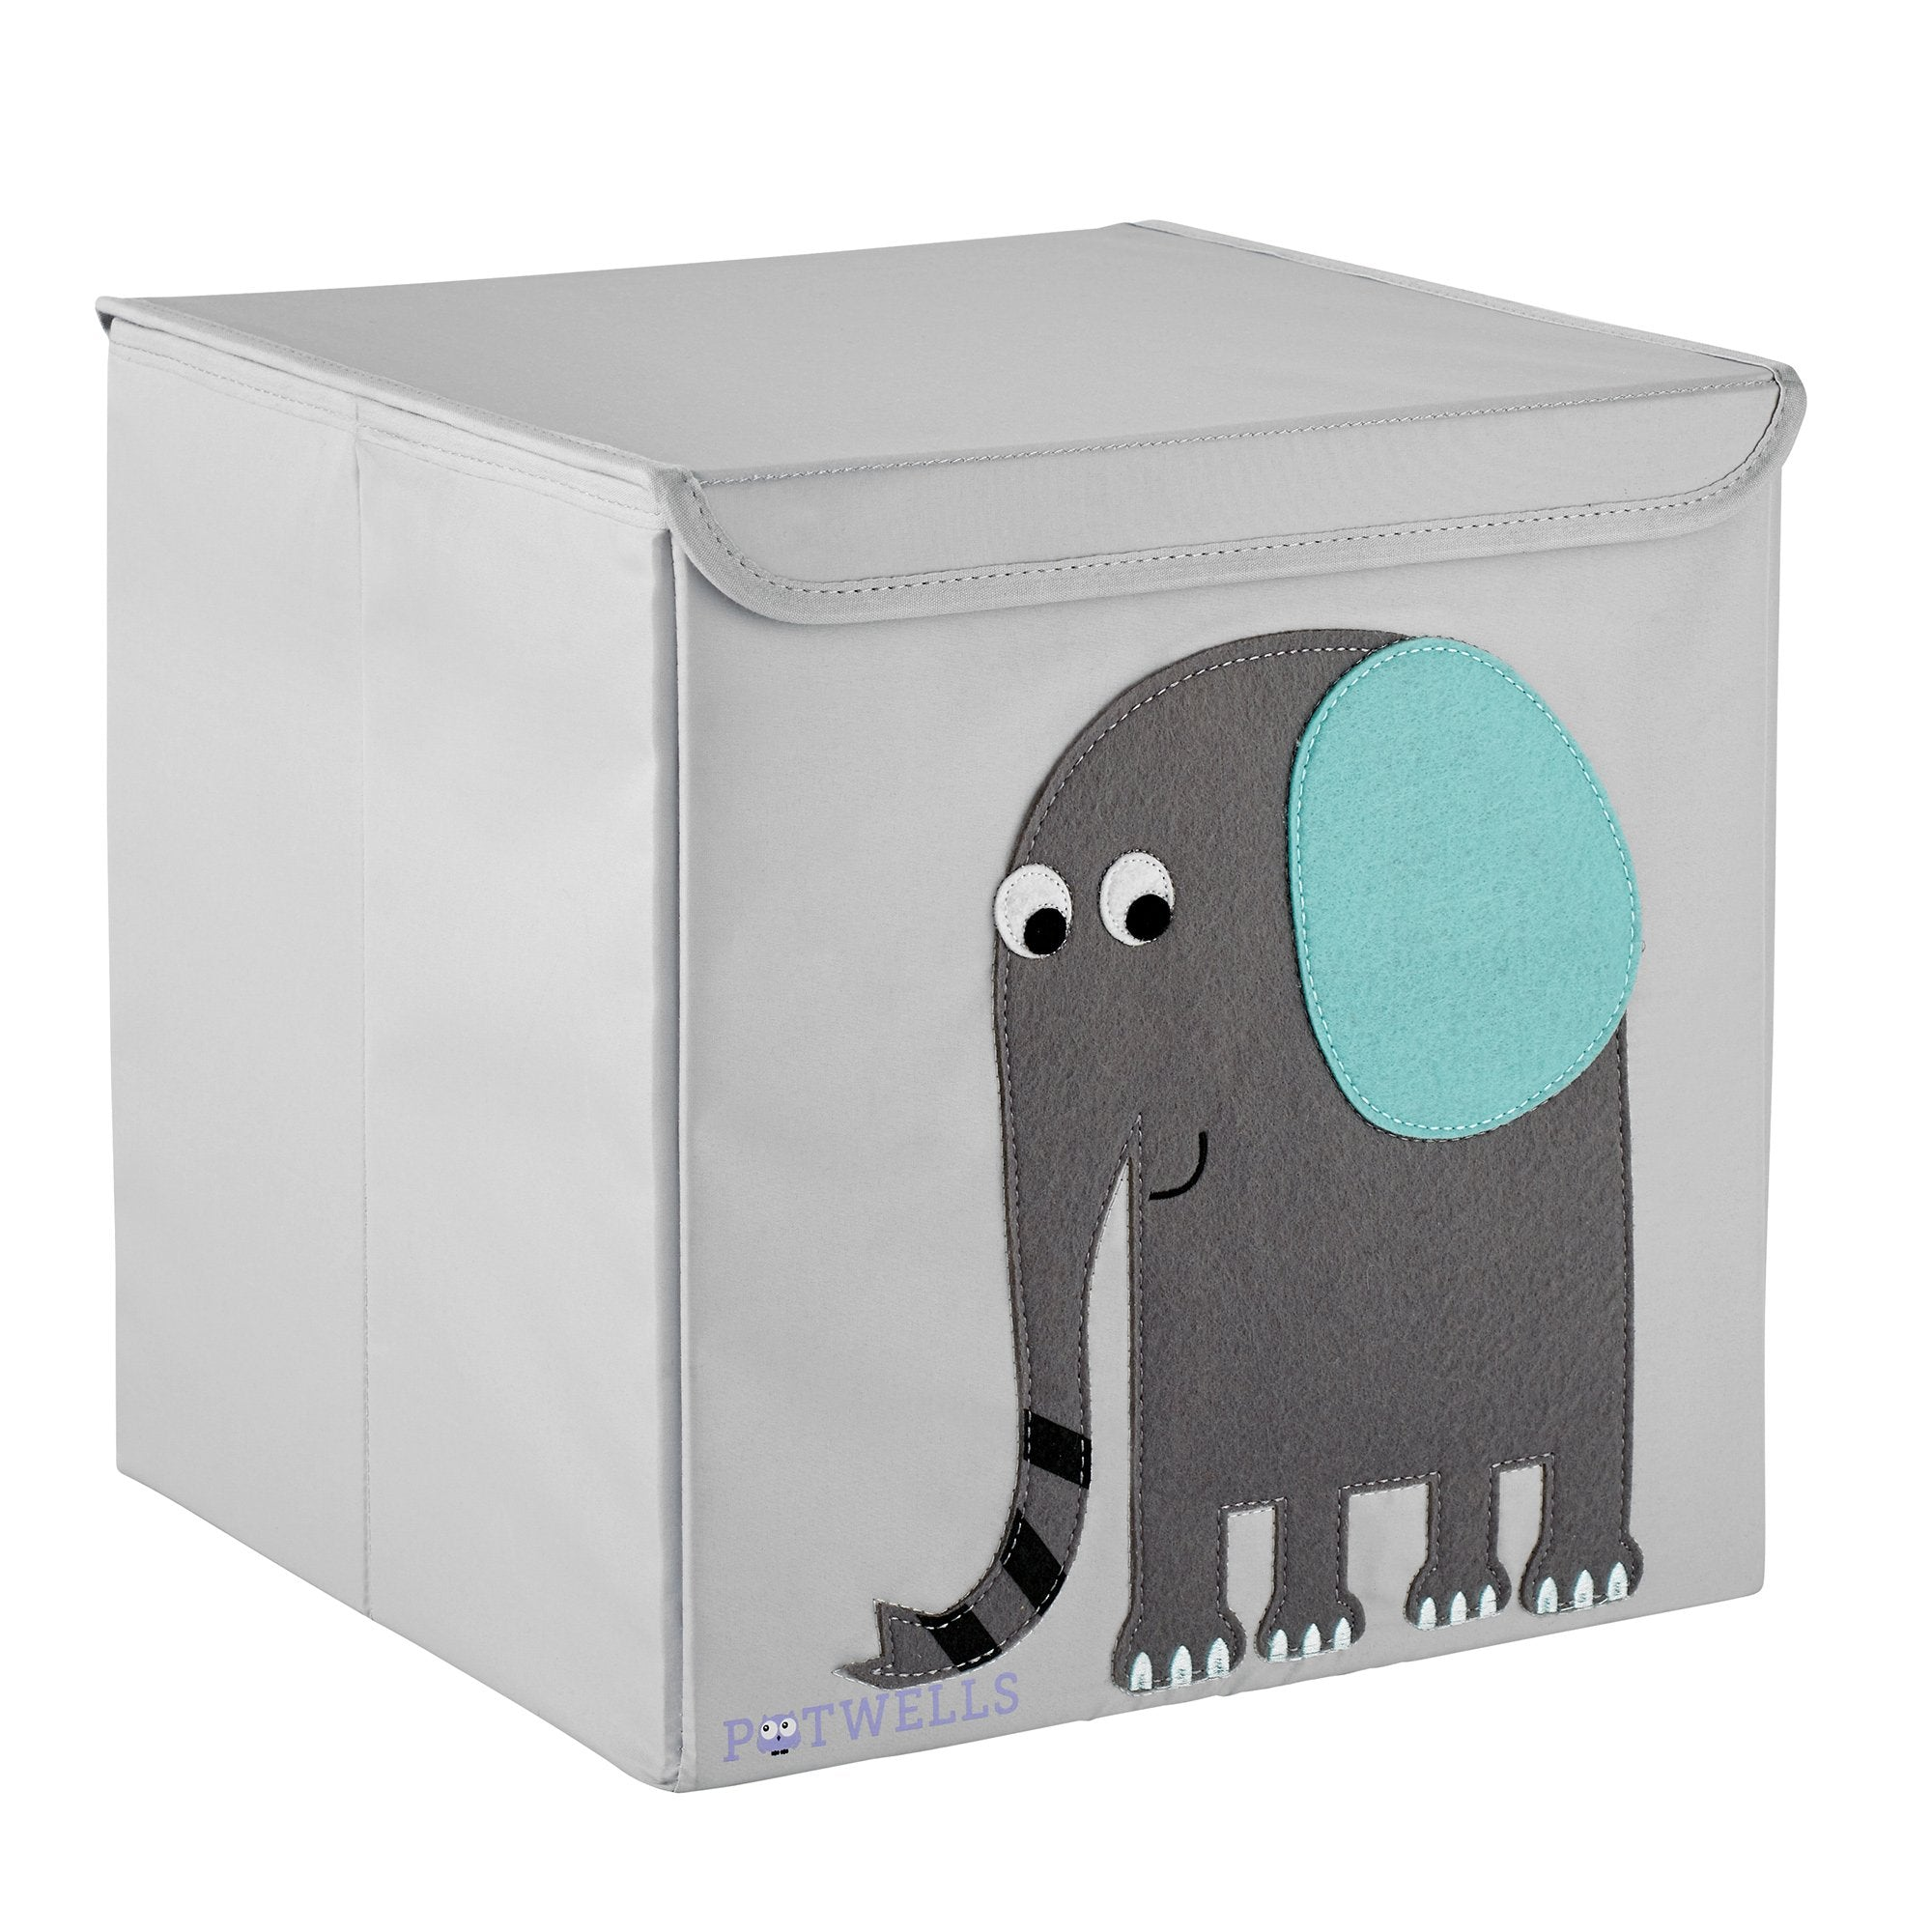 Potwells Storage Box - Elephant